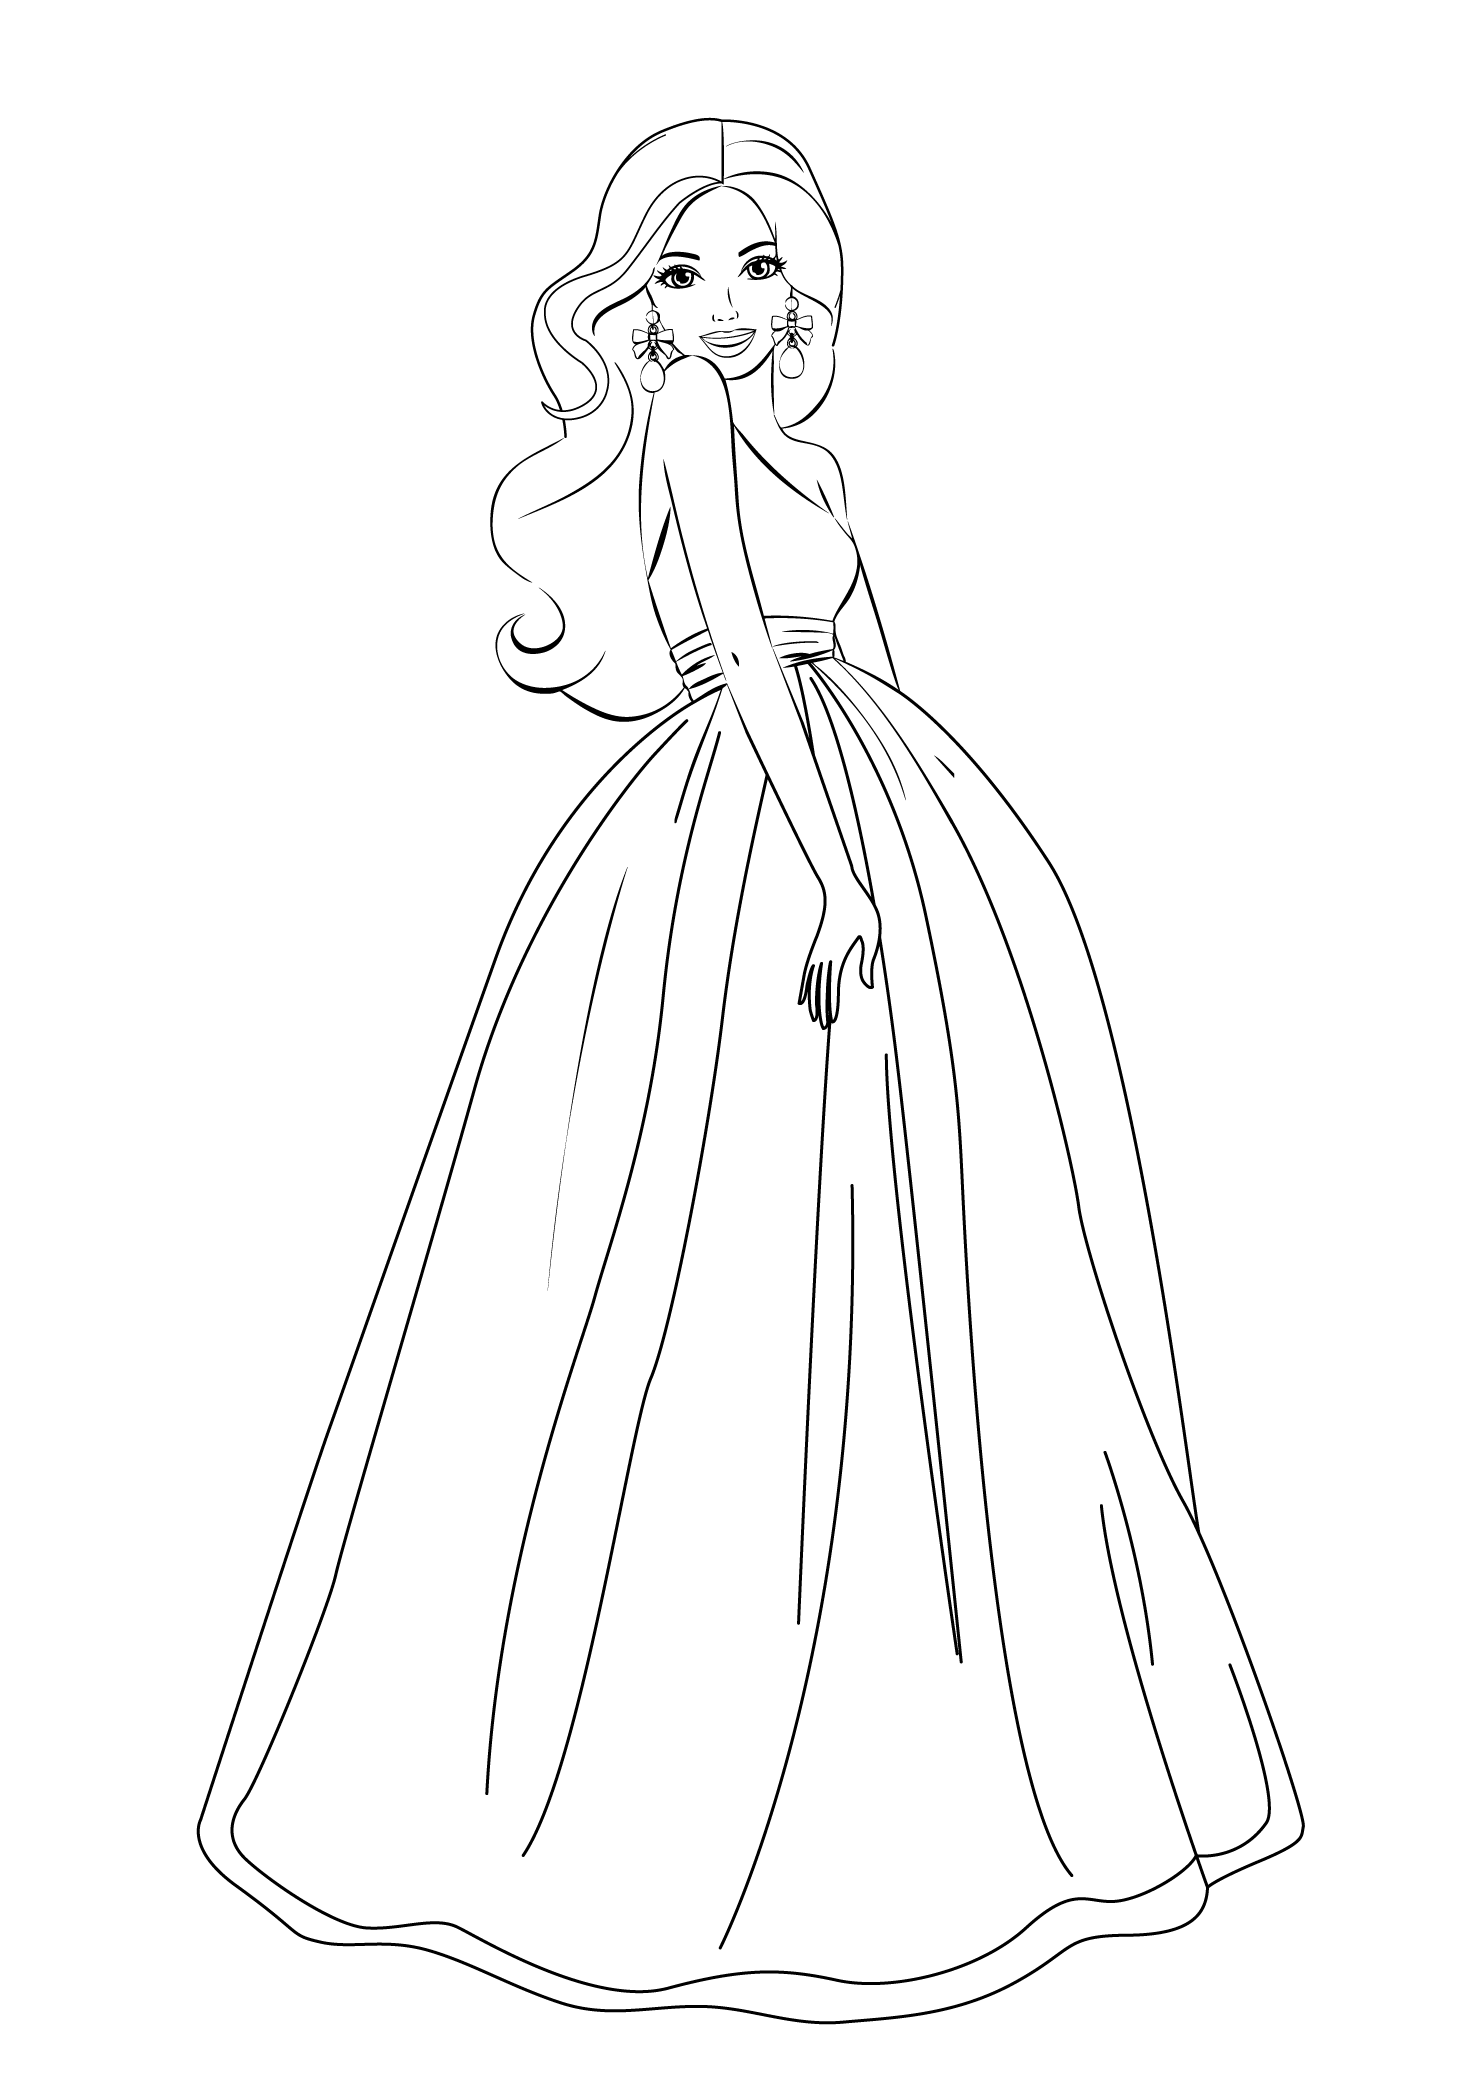 colouring pictures girls free printable coloring pages for girls pictures girls colouring